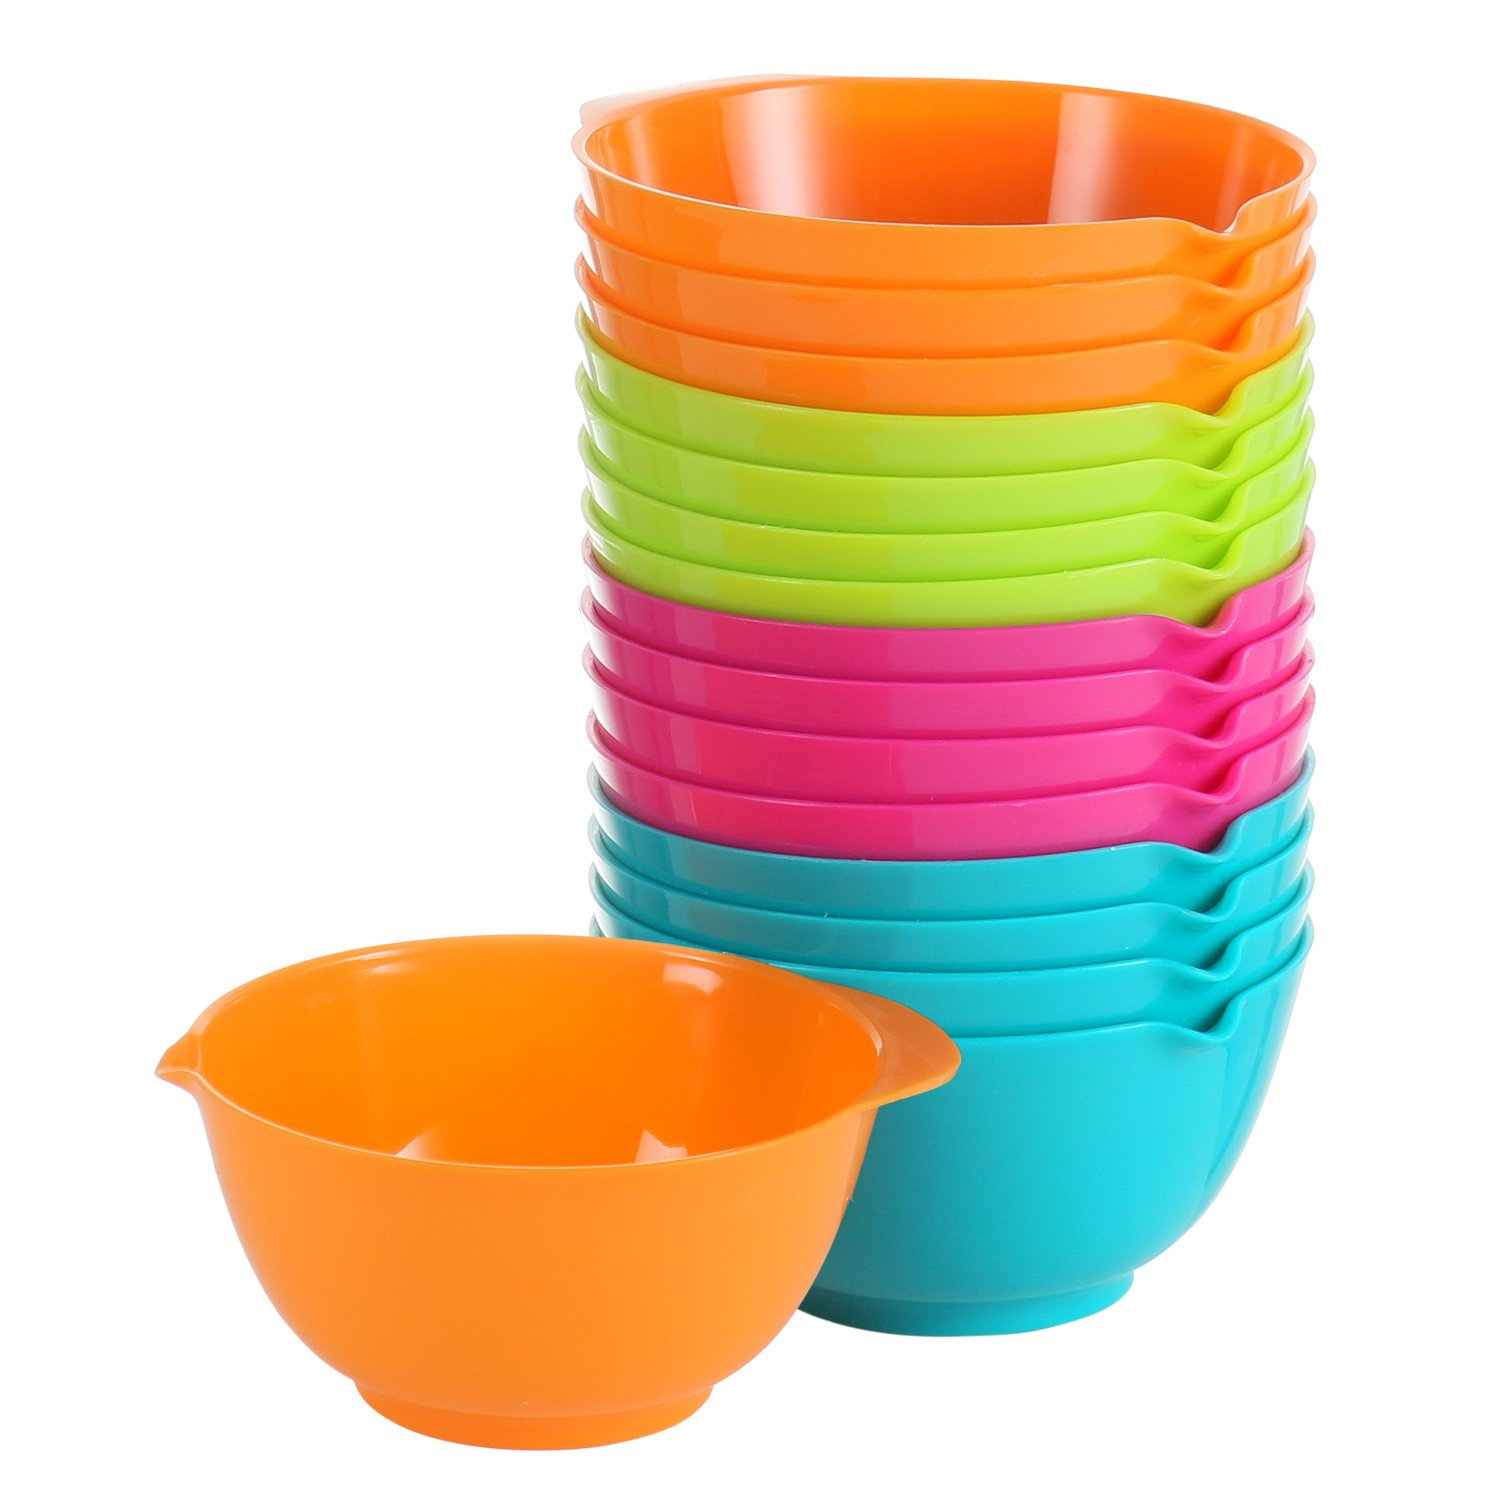 Small Cooking Prep Bowls, 5 Oz - Set Of 16 - Pink, Green, Blue & Orange | Nesting Plastic Finger Mixing Bowls - Mini Kitchen Mise En Place Dishes For Ingredients, Condiments, Sauces, Spices BPA Free